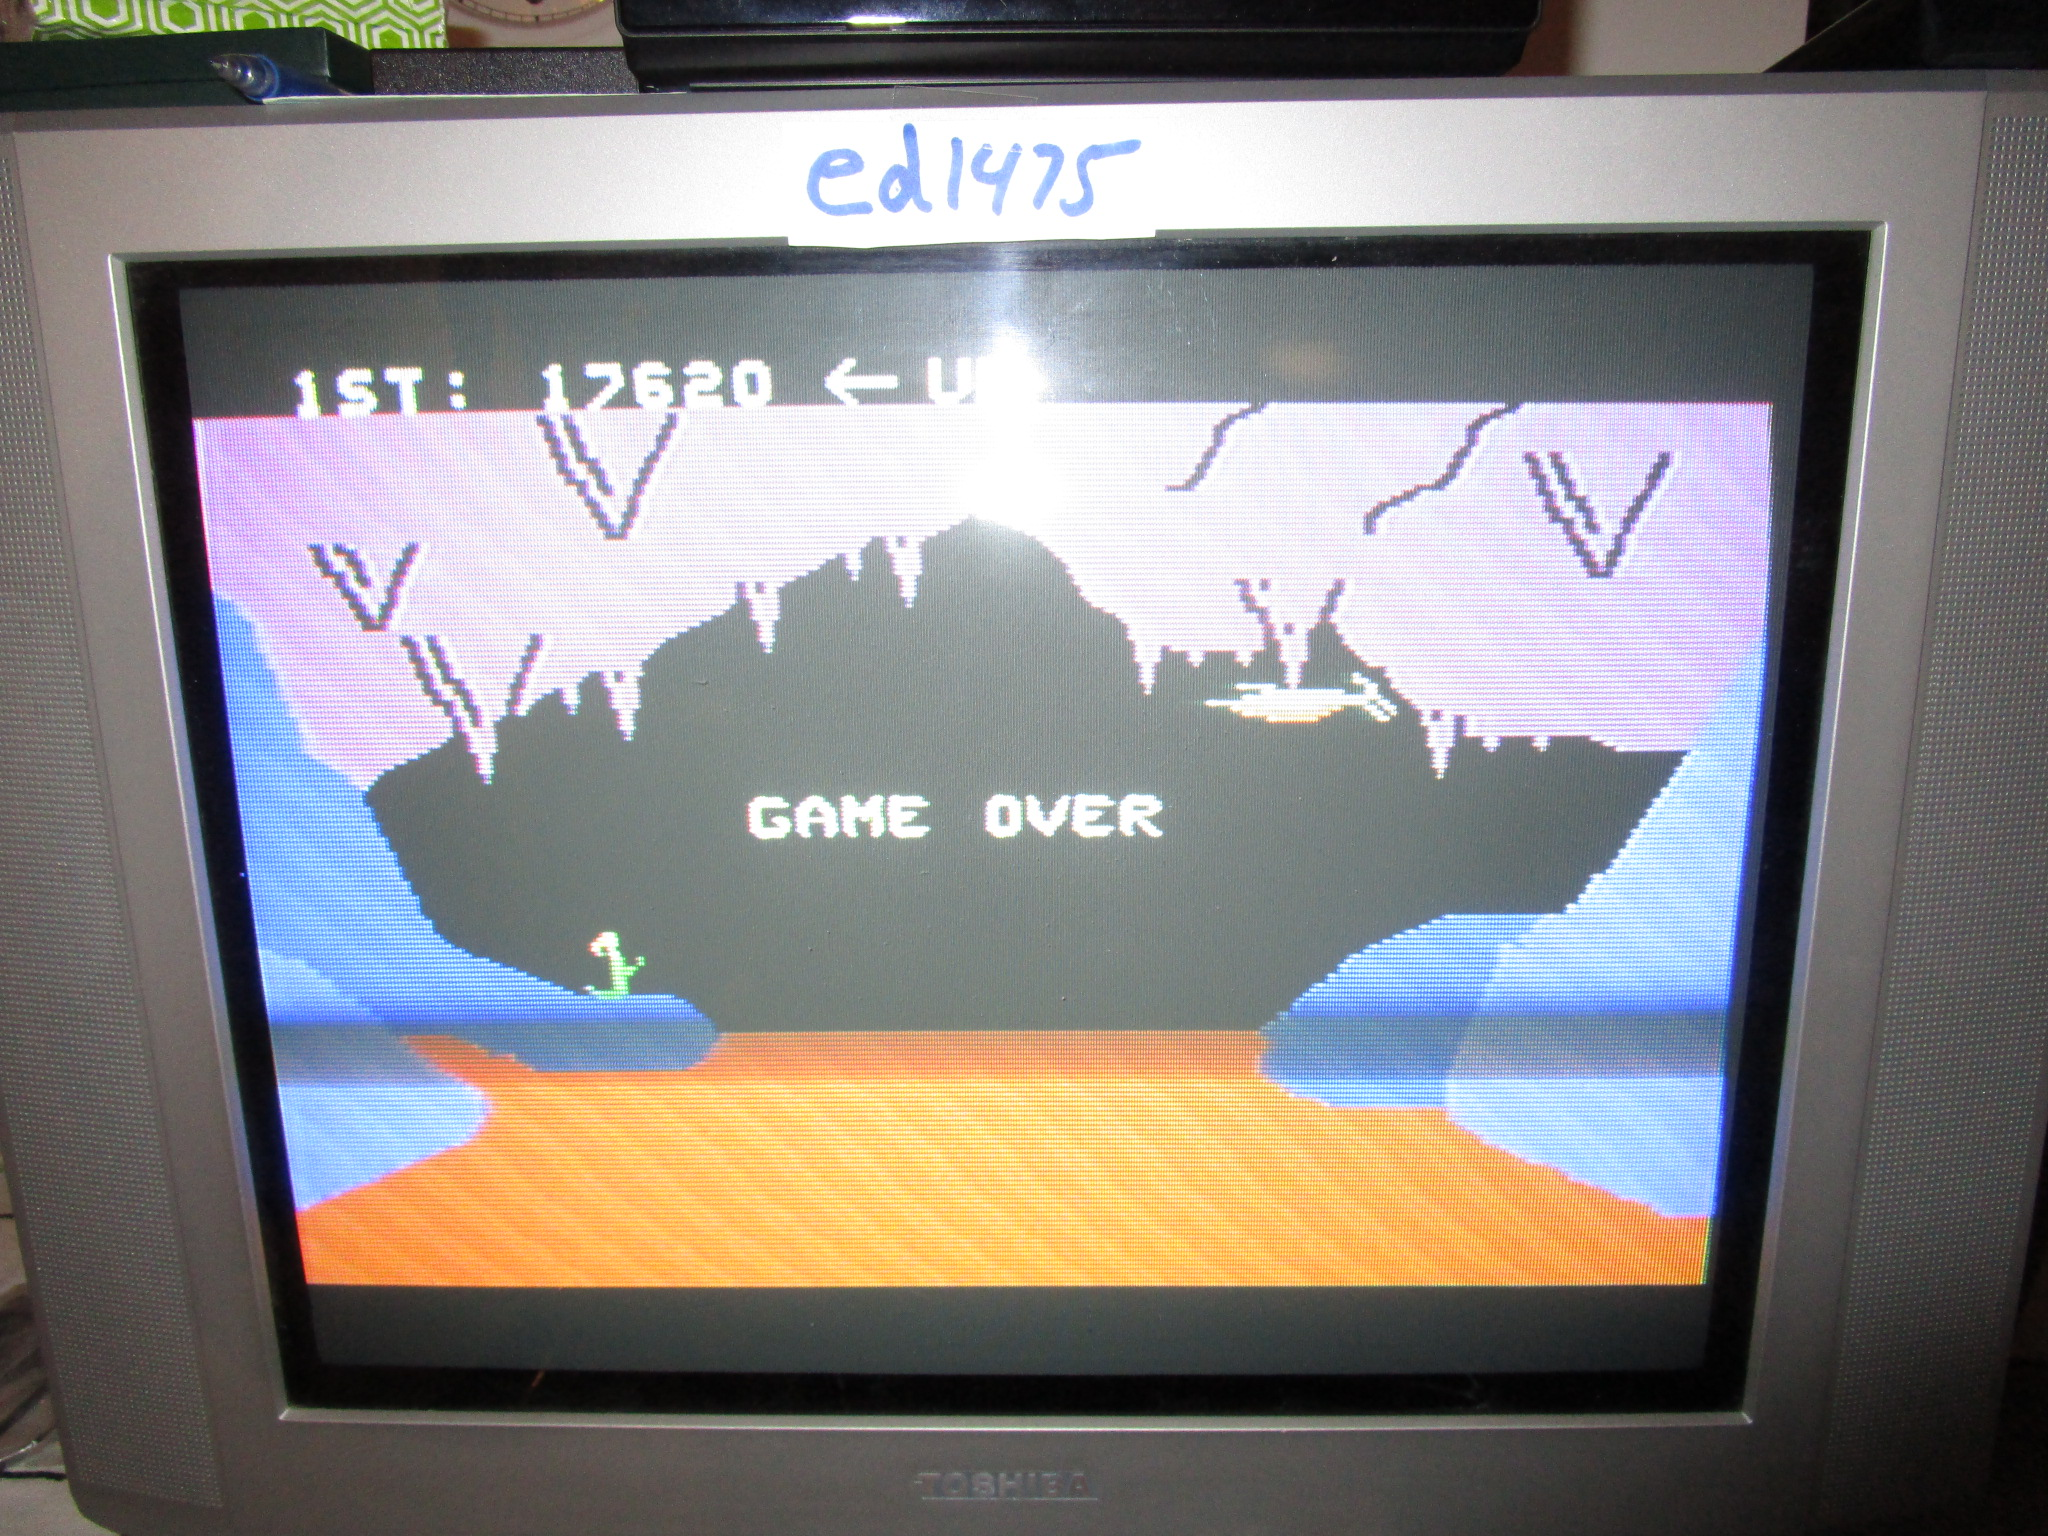 ed1475: Sir Lancelot (Colecovision) 17,620 points on 2014-12-14 16:11:02